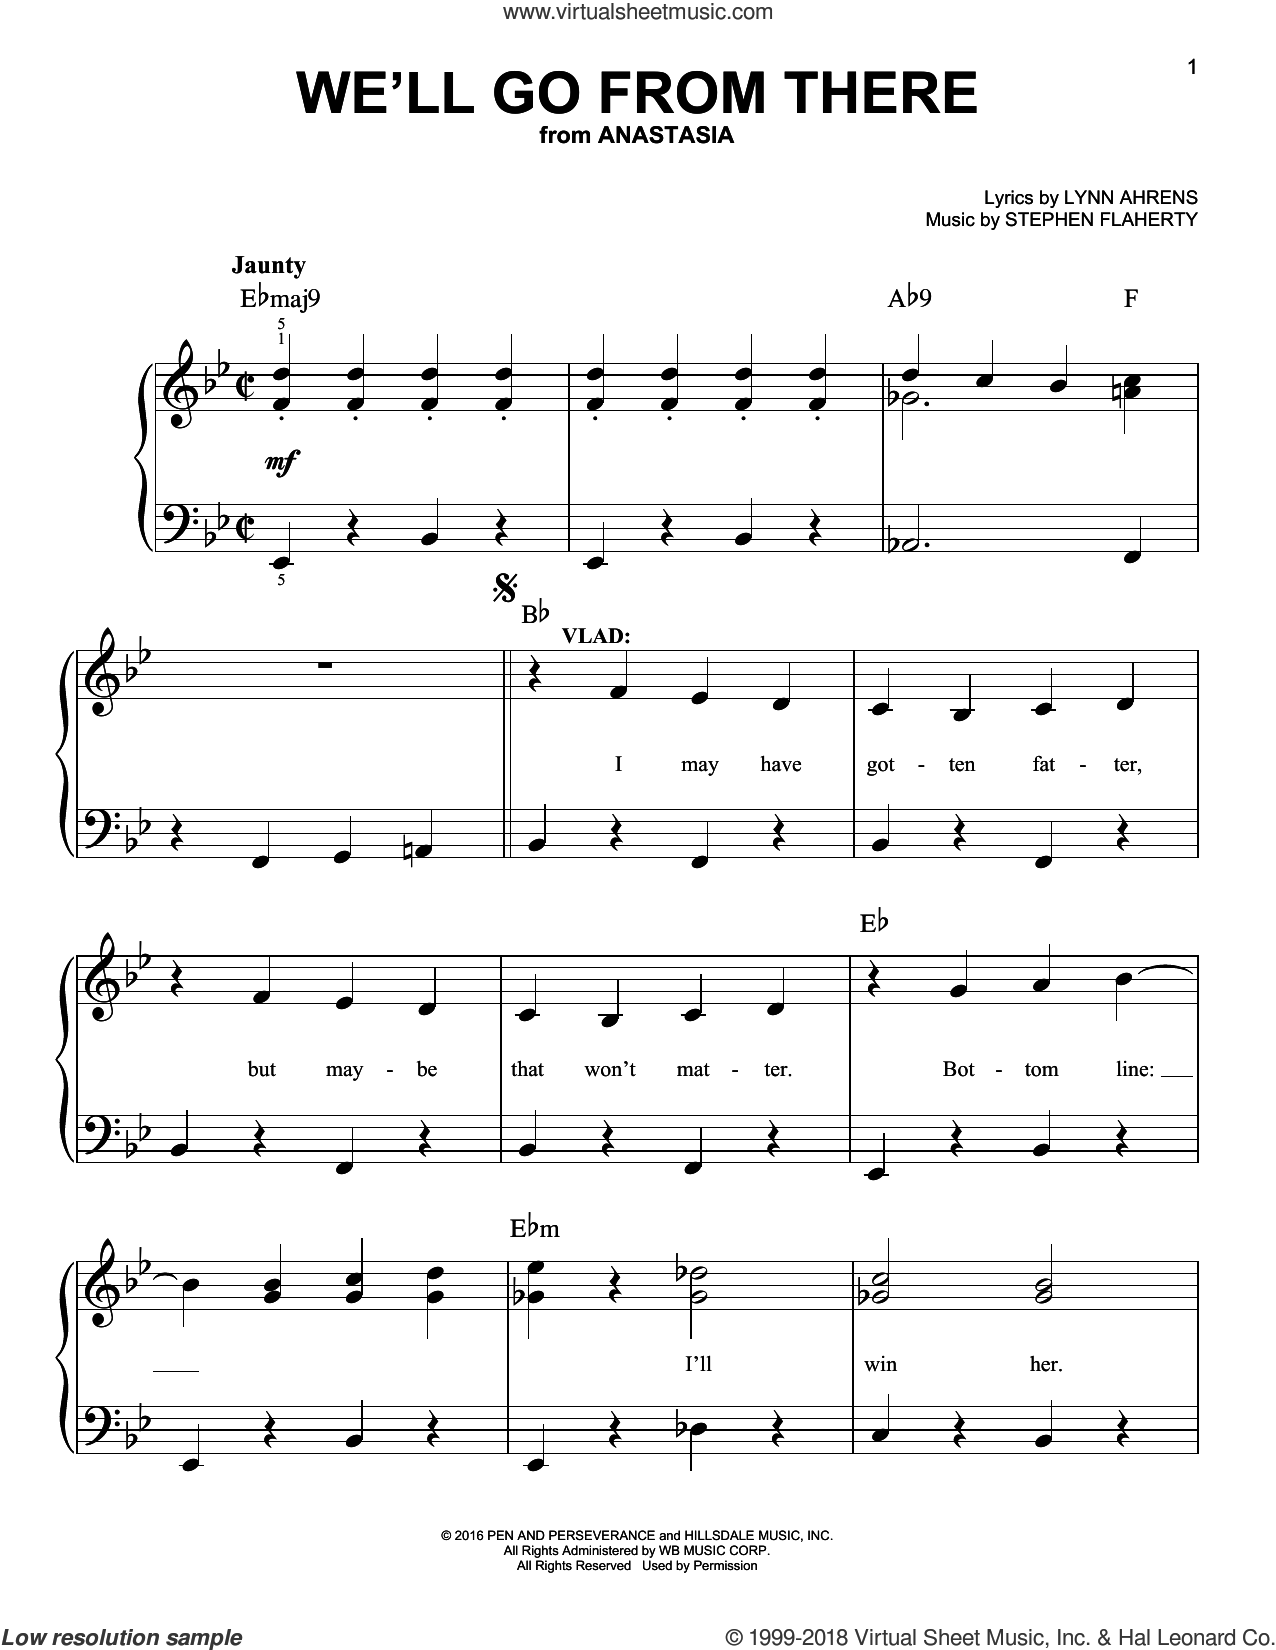 We'll Go From There sheet music for piano solo by Stephen Flaherty and Lynn Ahrens, easy skill level